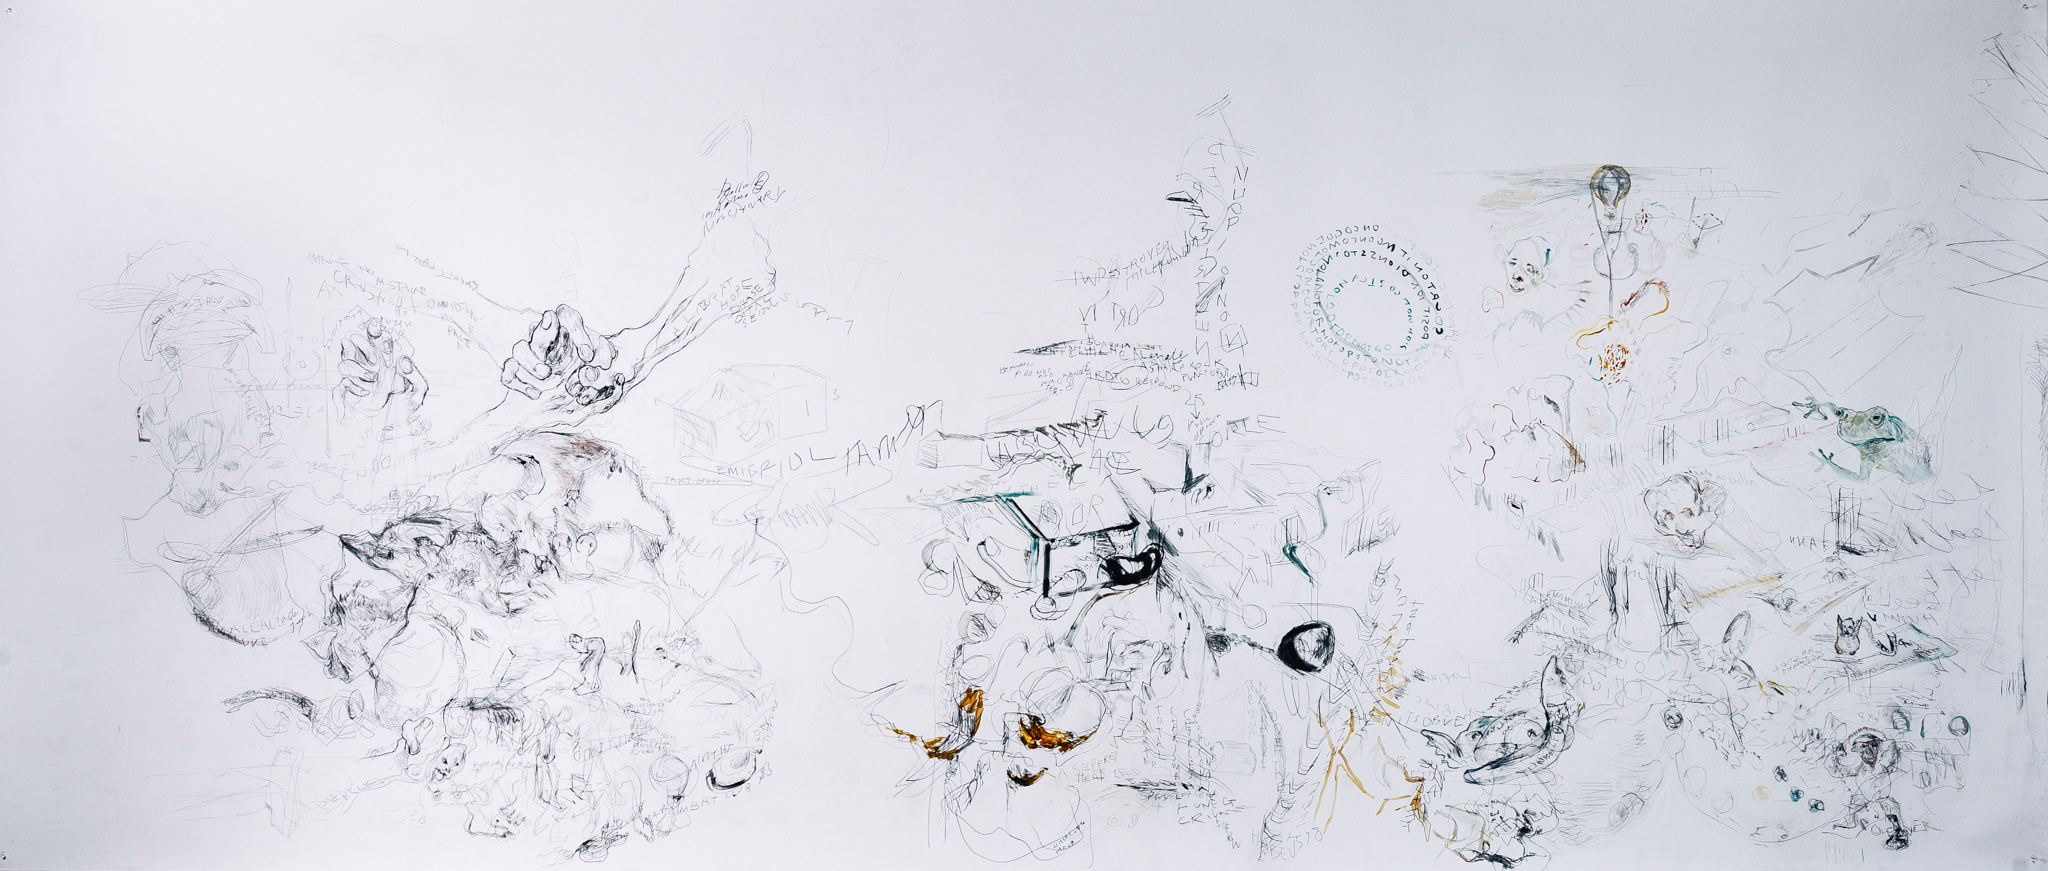 'Thumb Wars', 2016<br>Pencil, ink, watercolour, acrylic, tea on Fabriano paper, 150 x 364cm